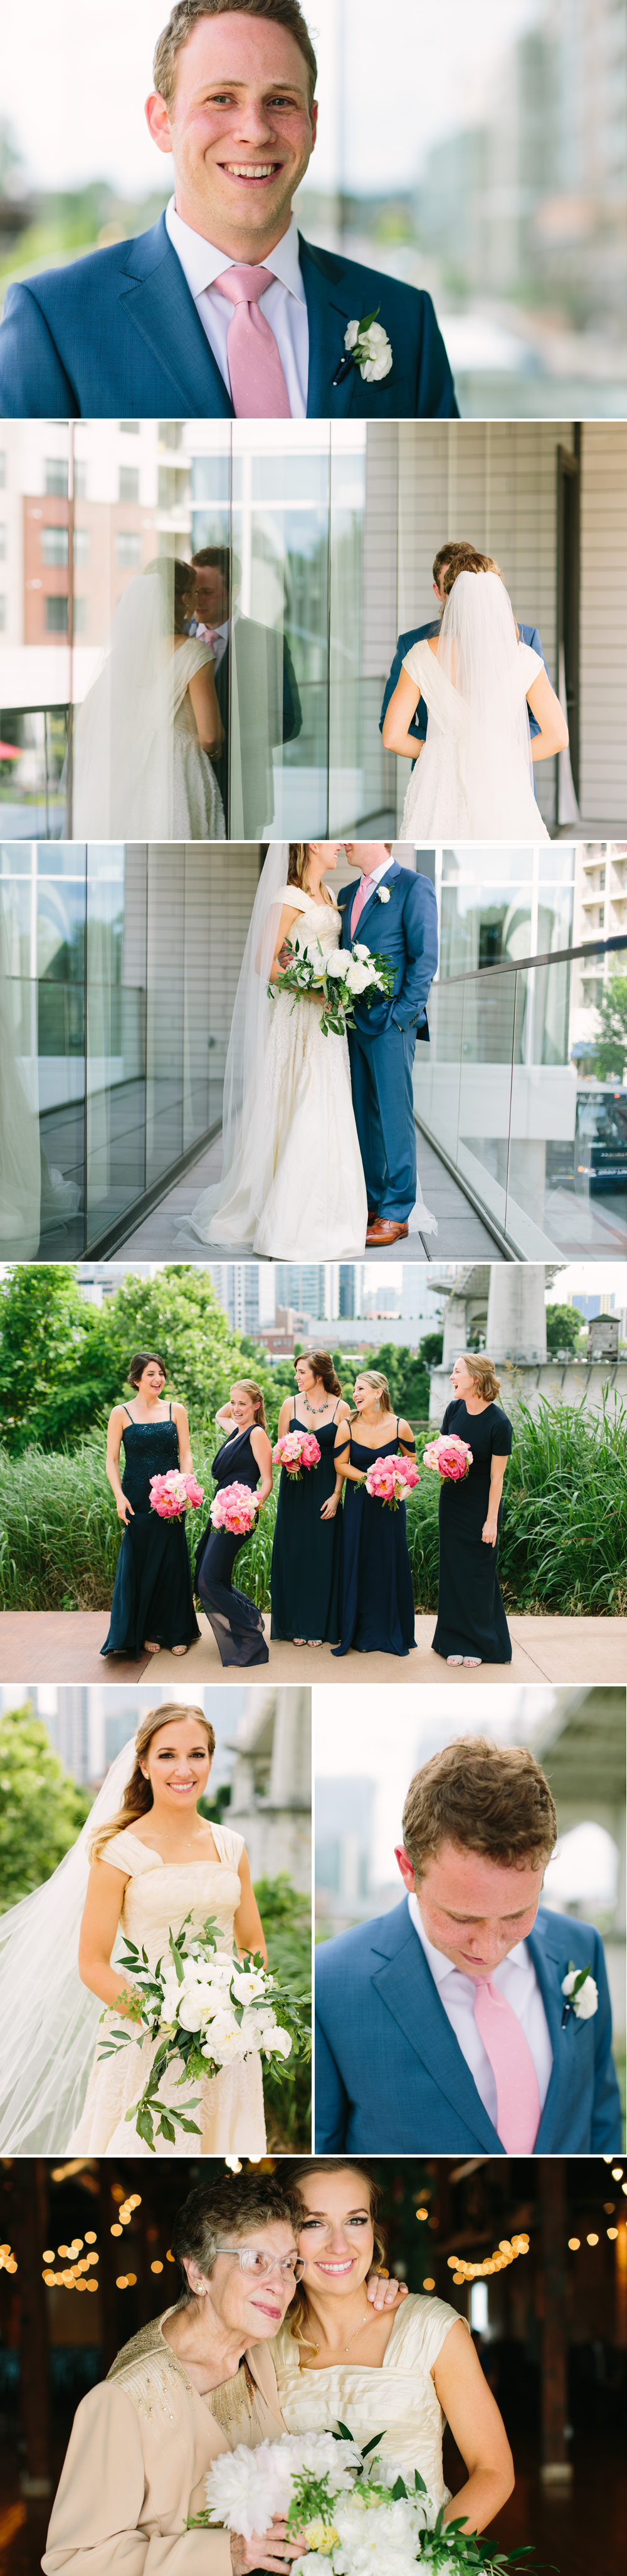 Nashville_Wedding_Photographers_3.jpg